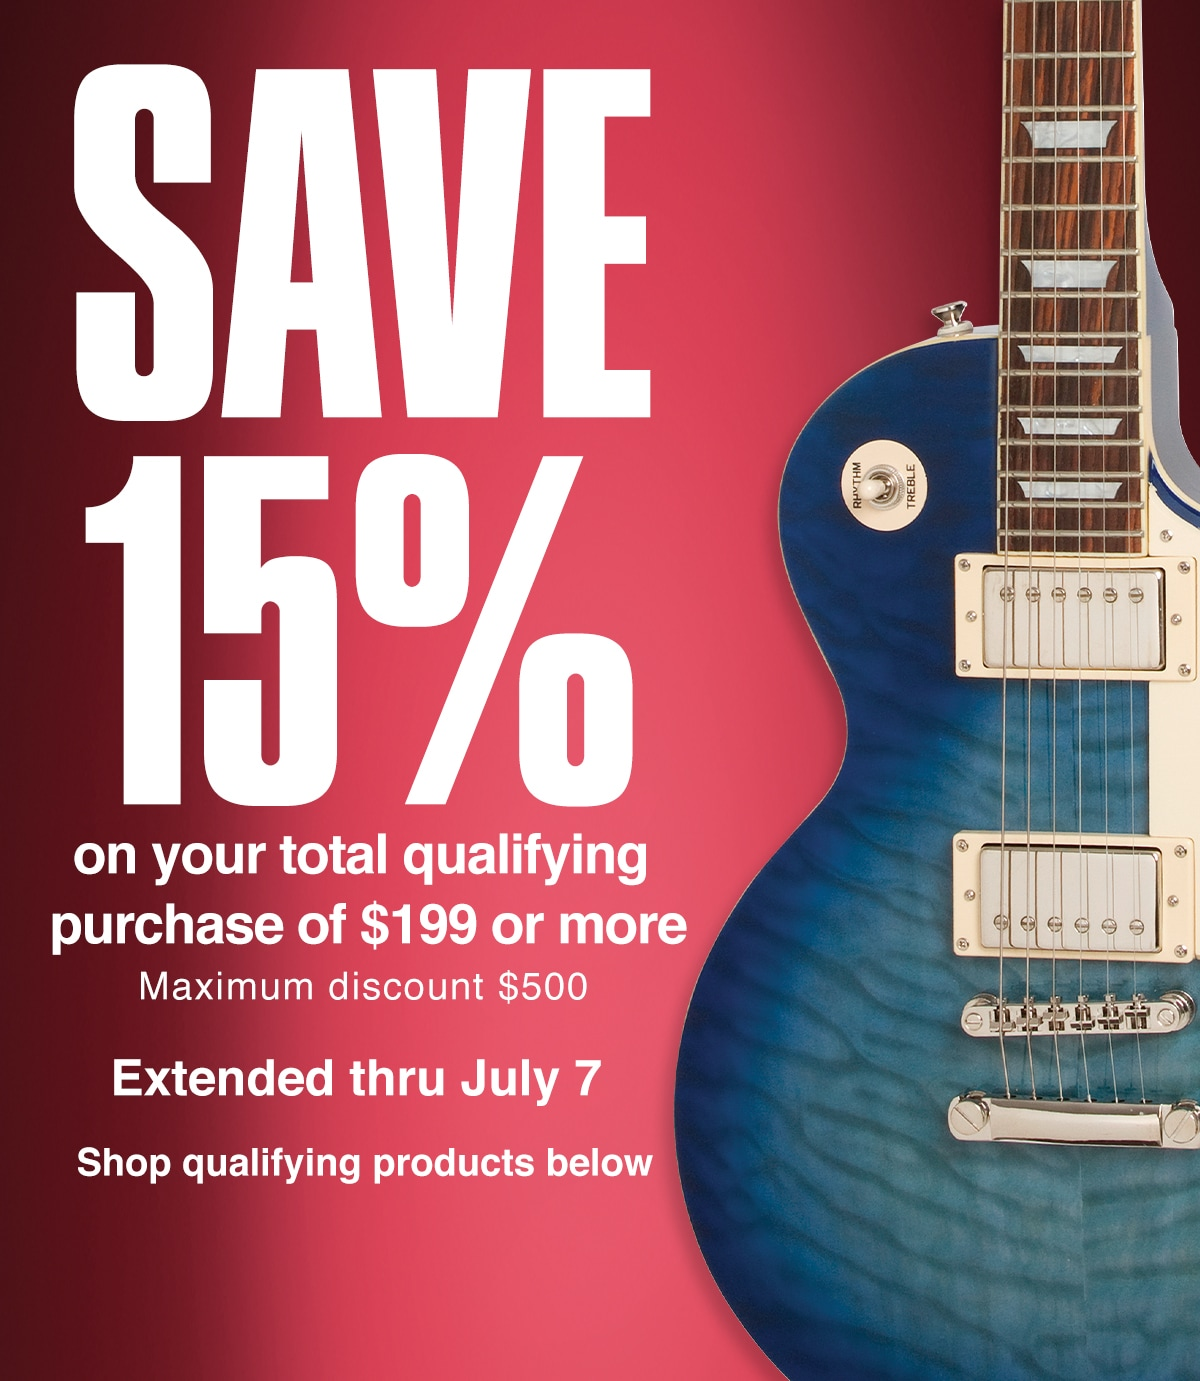 Save 15 percent on your total qualifying purchase of 199 dollars ore more. Extended thru July 7. Maximum discount 500 dollars. Shop qualifying products below.